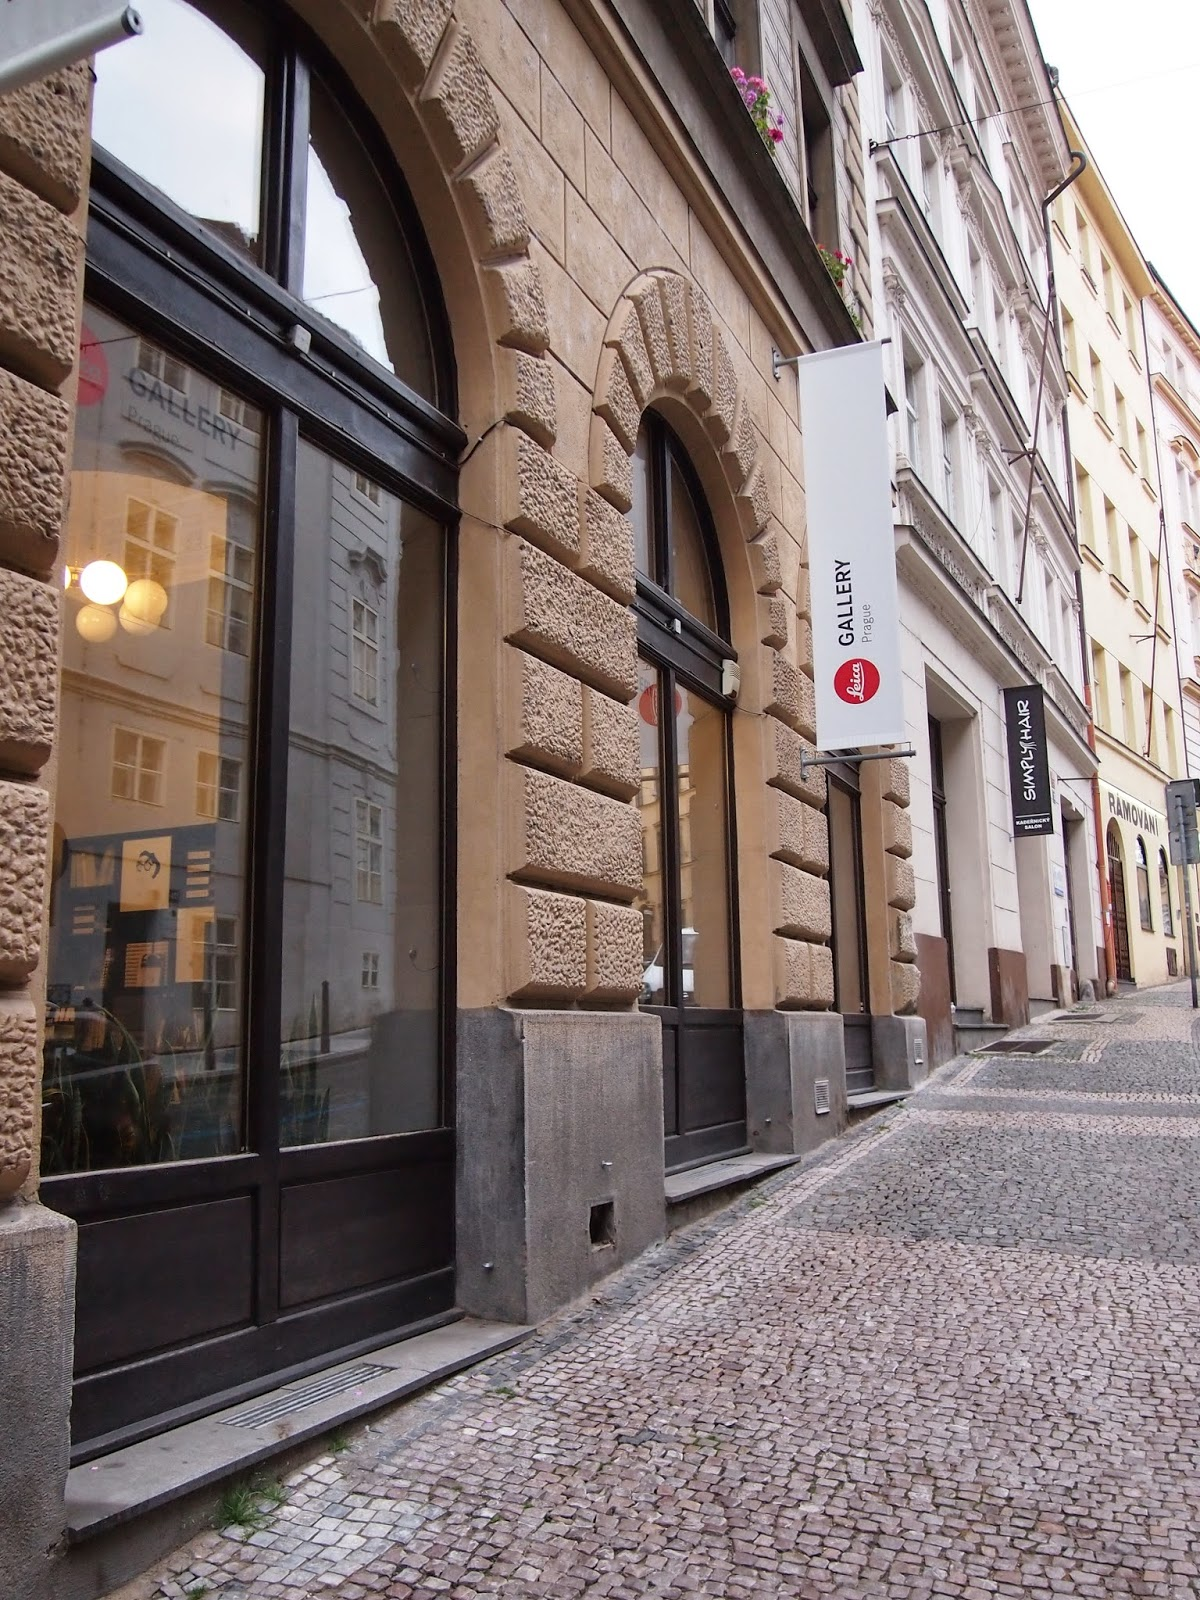 The outside of the Leica Cafe in Prague